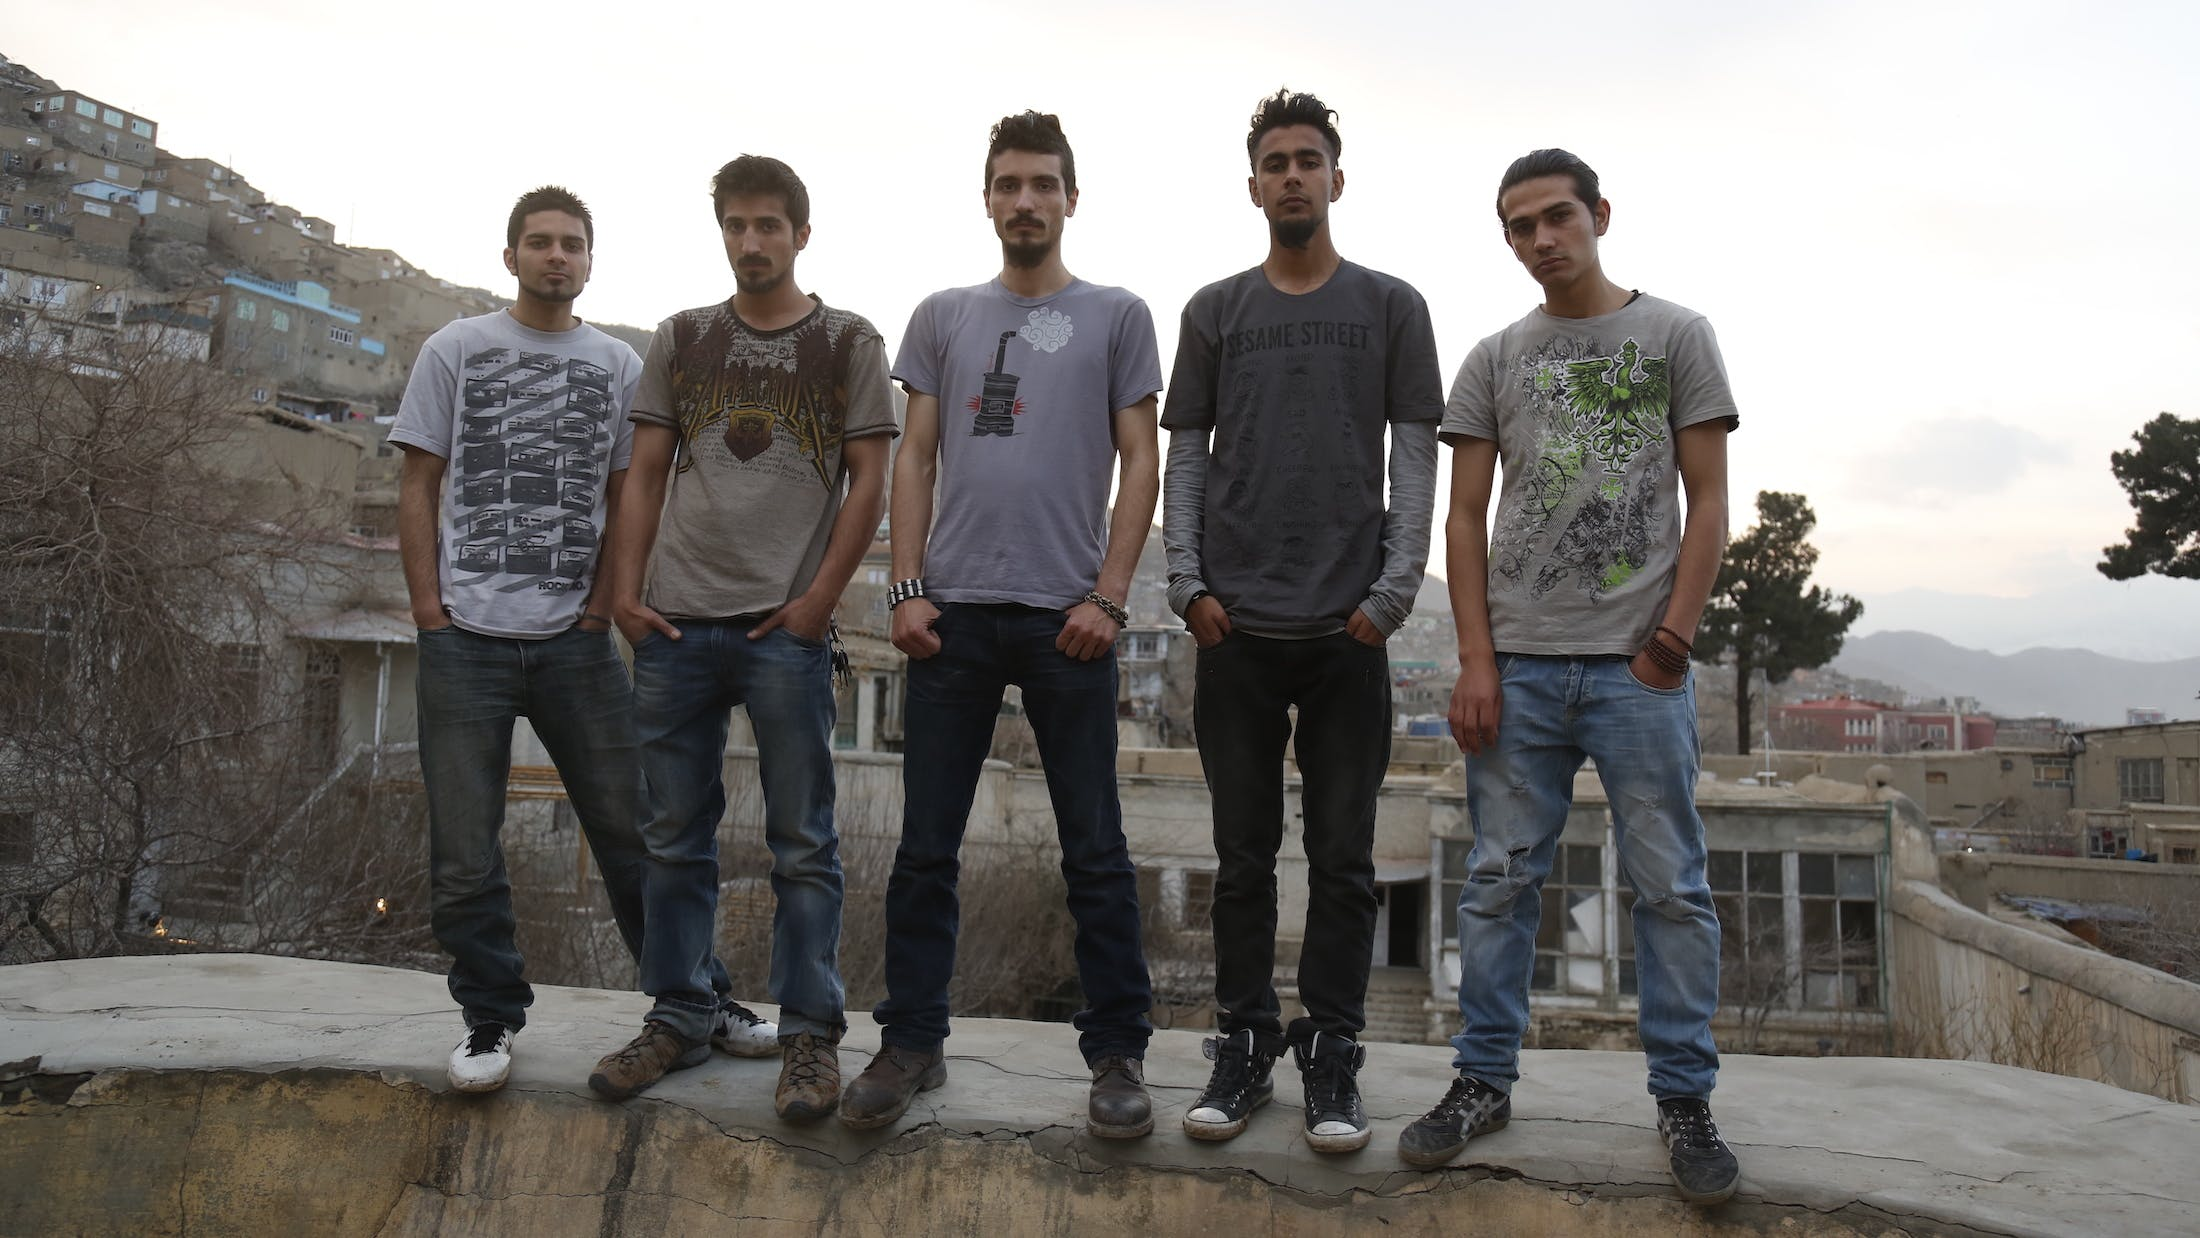 District Unknown: Meet The Band Who've Literally Risked Their Lives For Metal